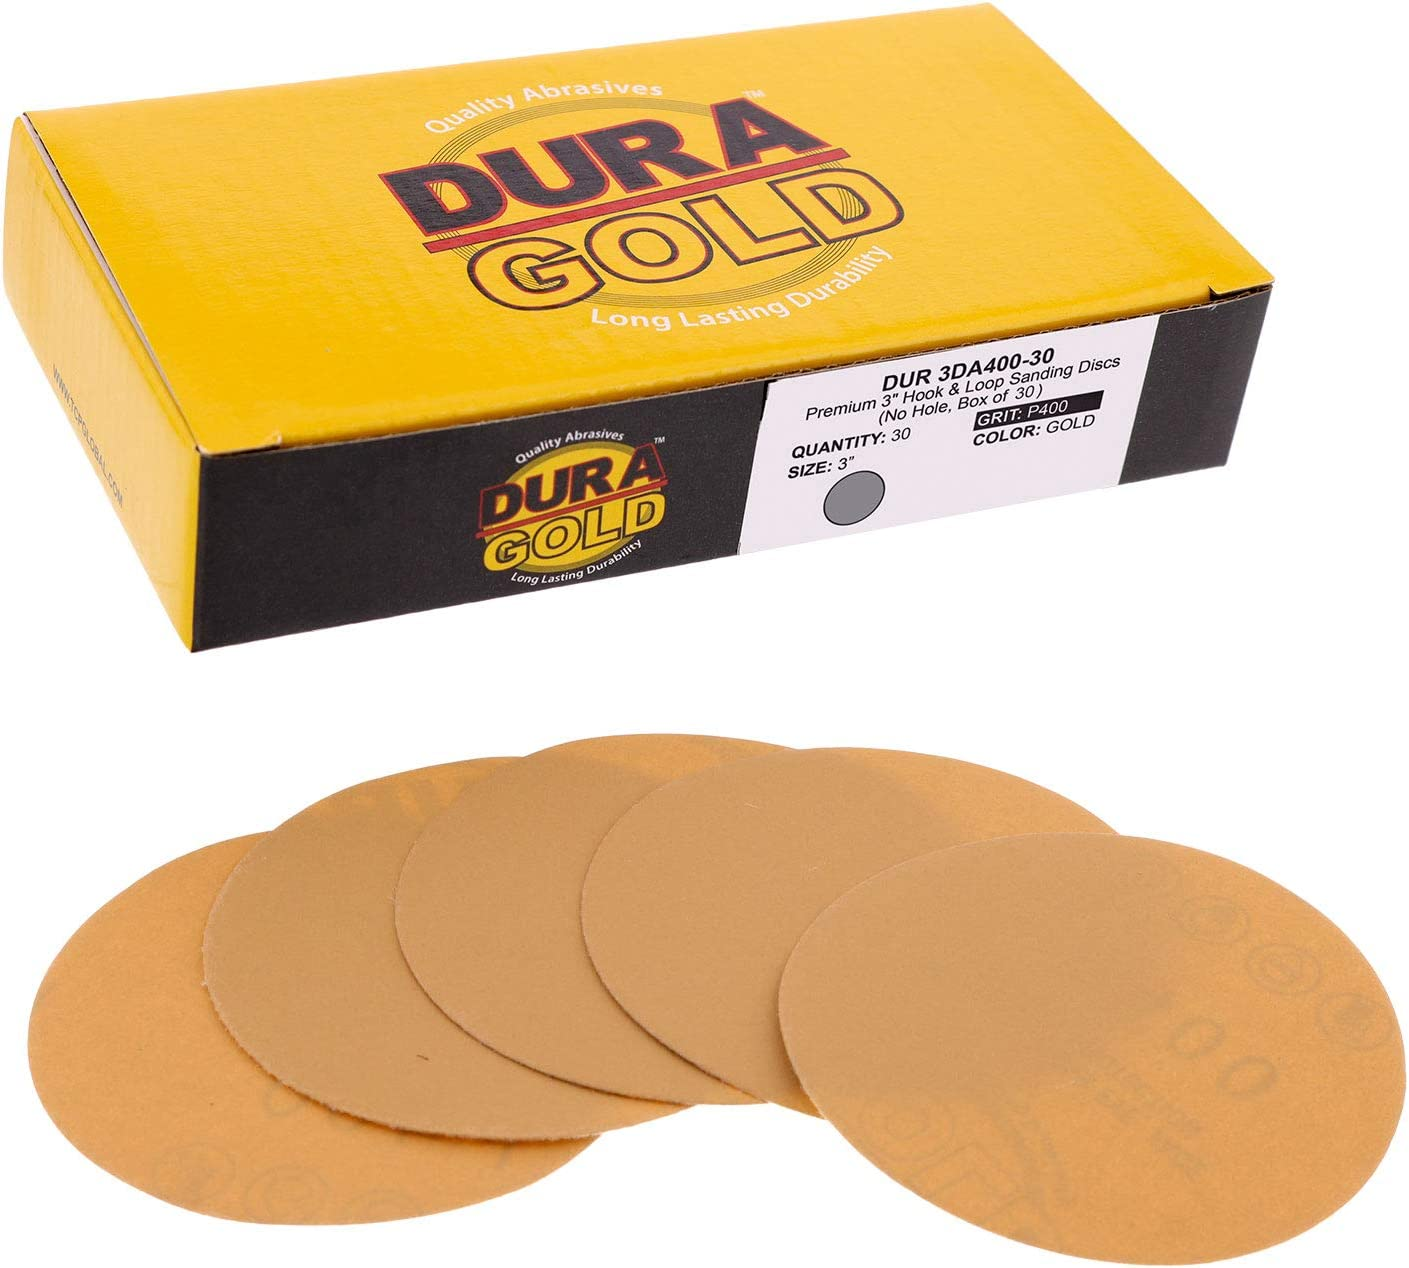 Premium- 3 Disc Variety//Assortment Pack 40,60,80,120,220,320,400,600,800,1000 Box 50 Sandpaper Discs for Automotive Woodworking with Bonus Backing Plate Dura-Gold - 3 Gold Hook /& Loop Discs